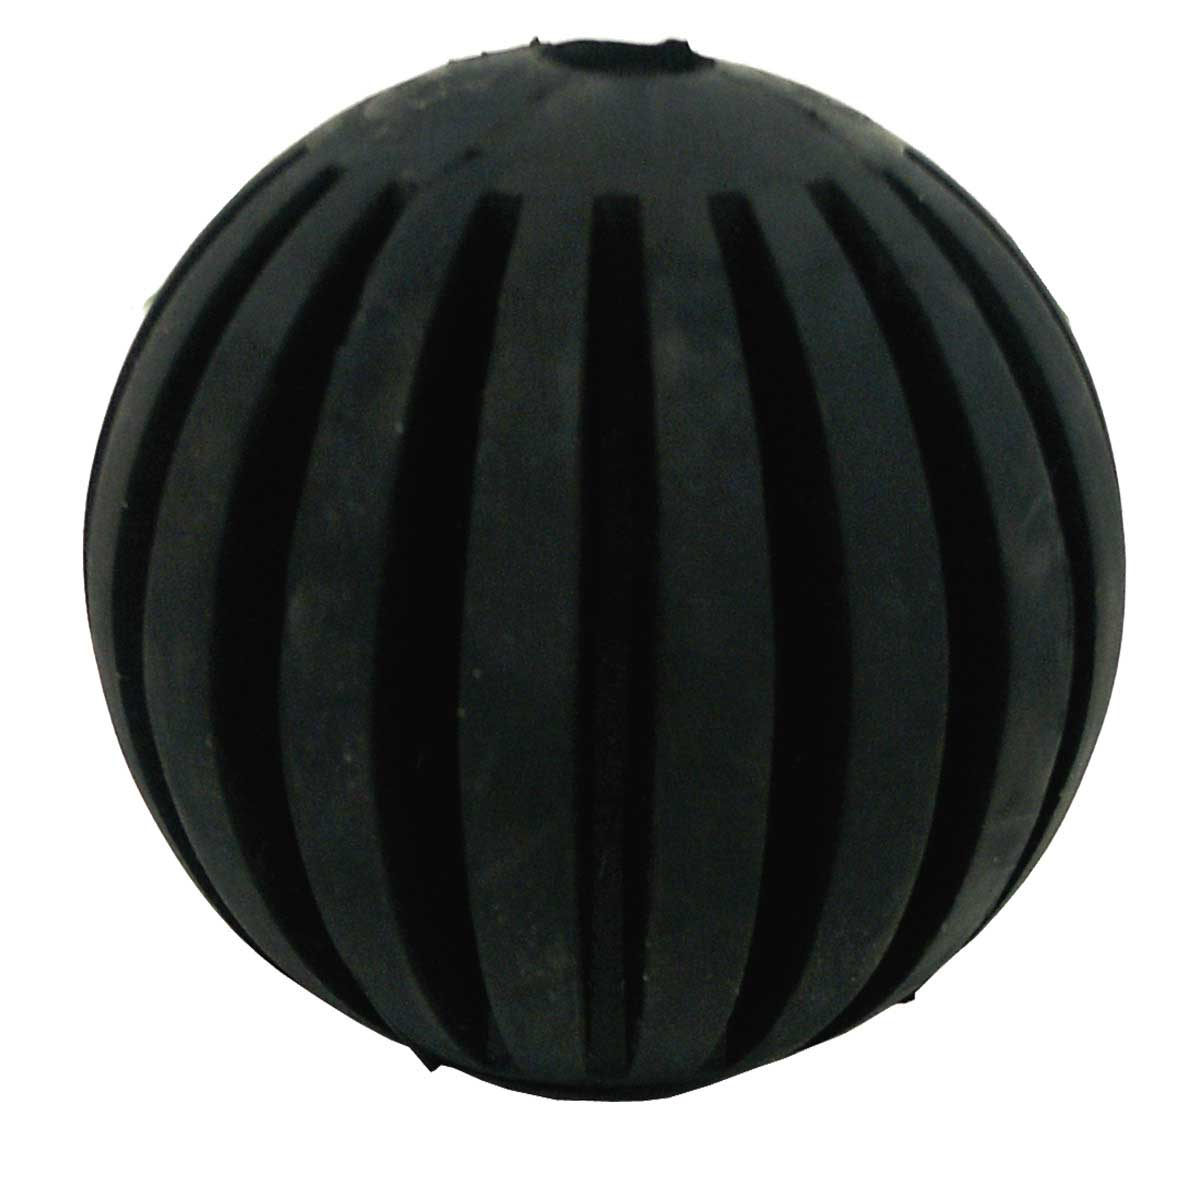 JW Tanzanian Mountain Ball (Large) 4.5 inch for Dogs